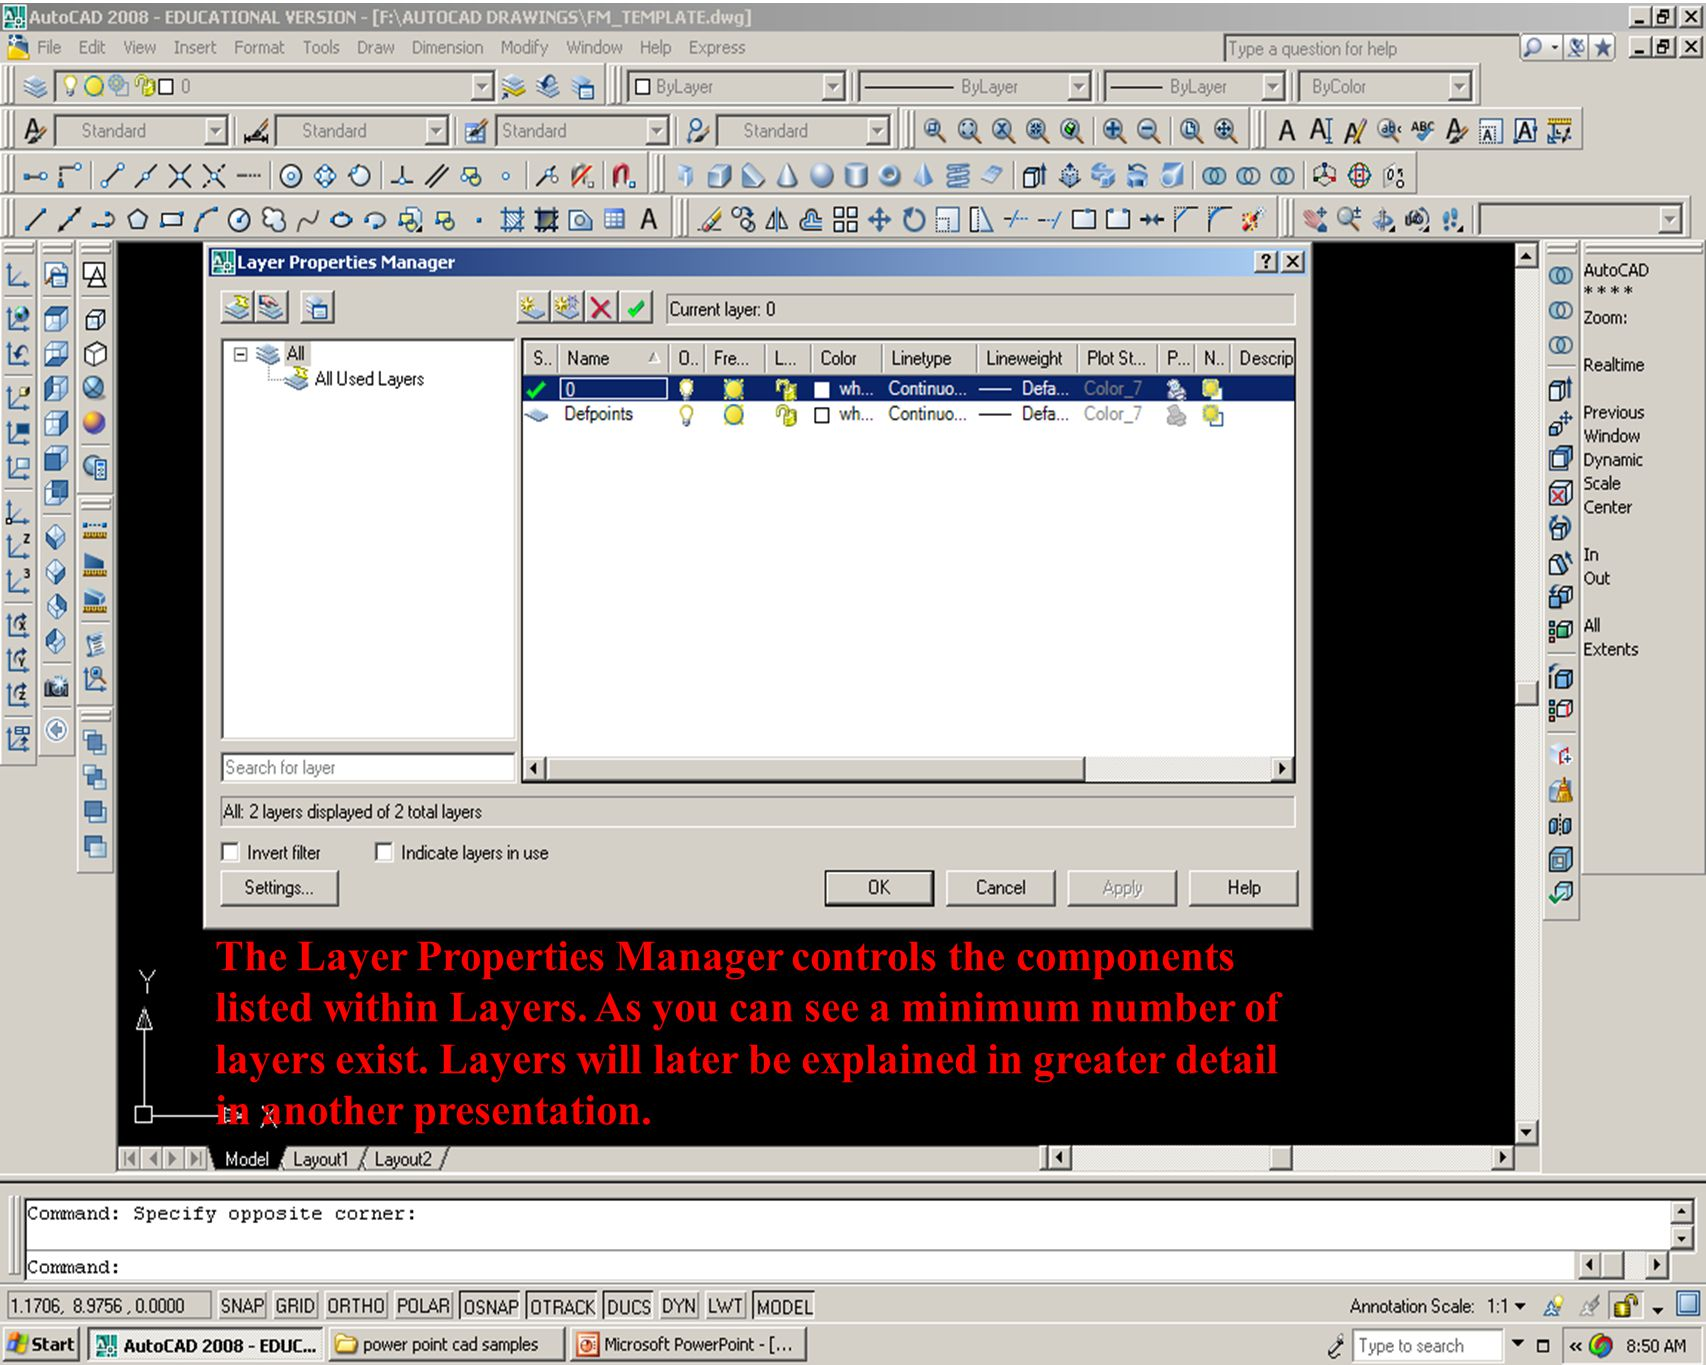 The Layer Properties Manager controls the components listed within Layers.